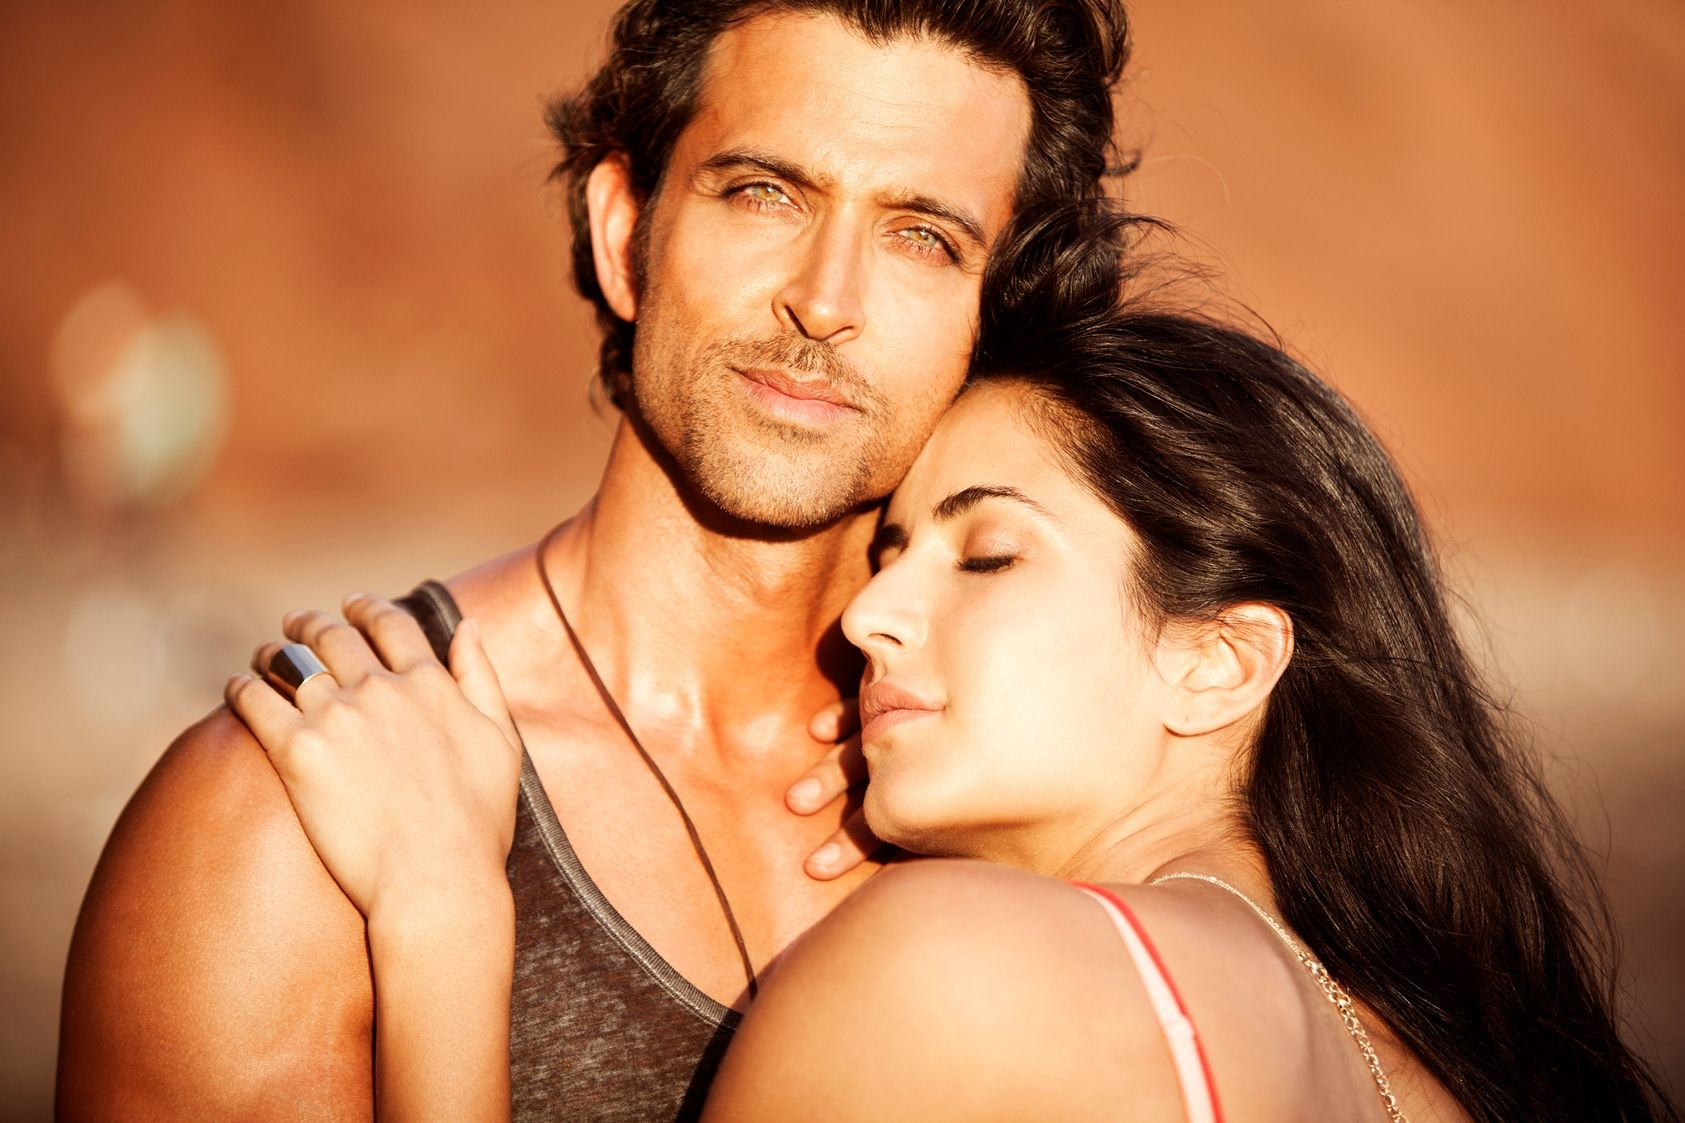 Katrina kaif and hrithik roshan dating